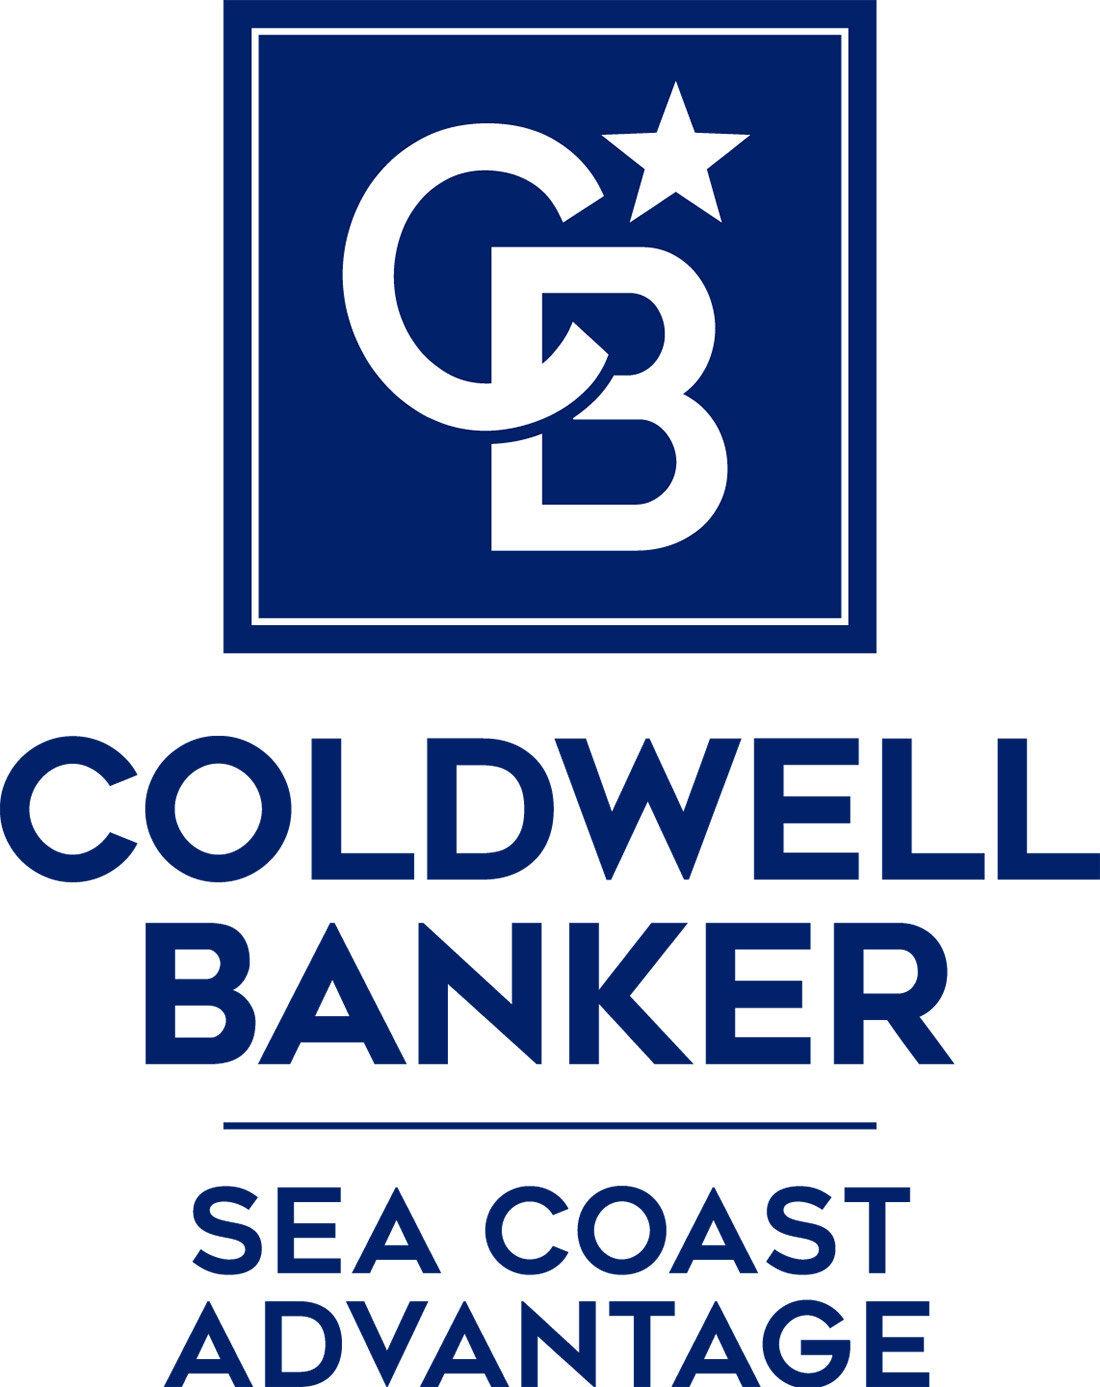 David Enzor - Coldwell Banker Sea Coast Advantage Realty